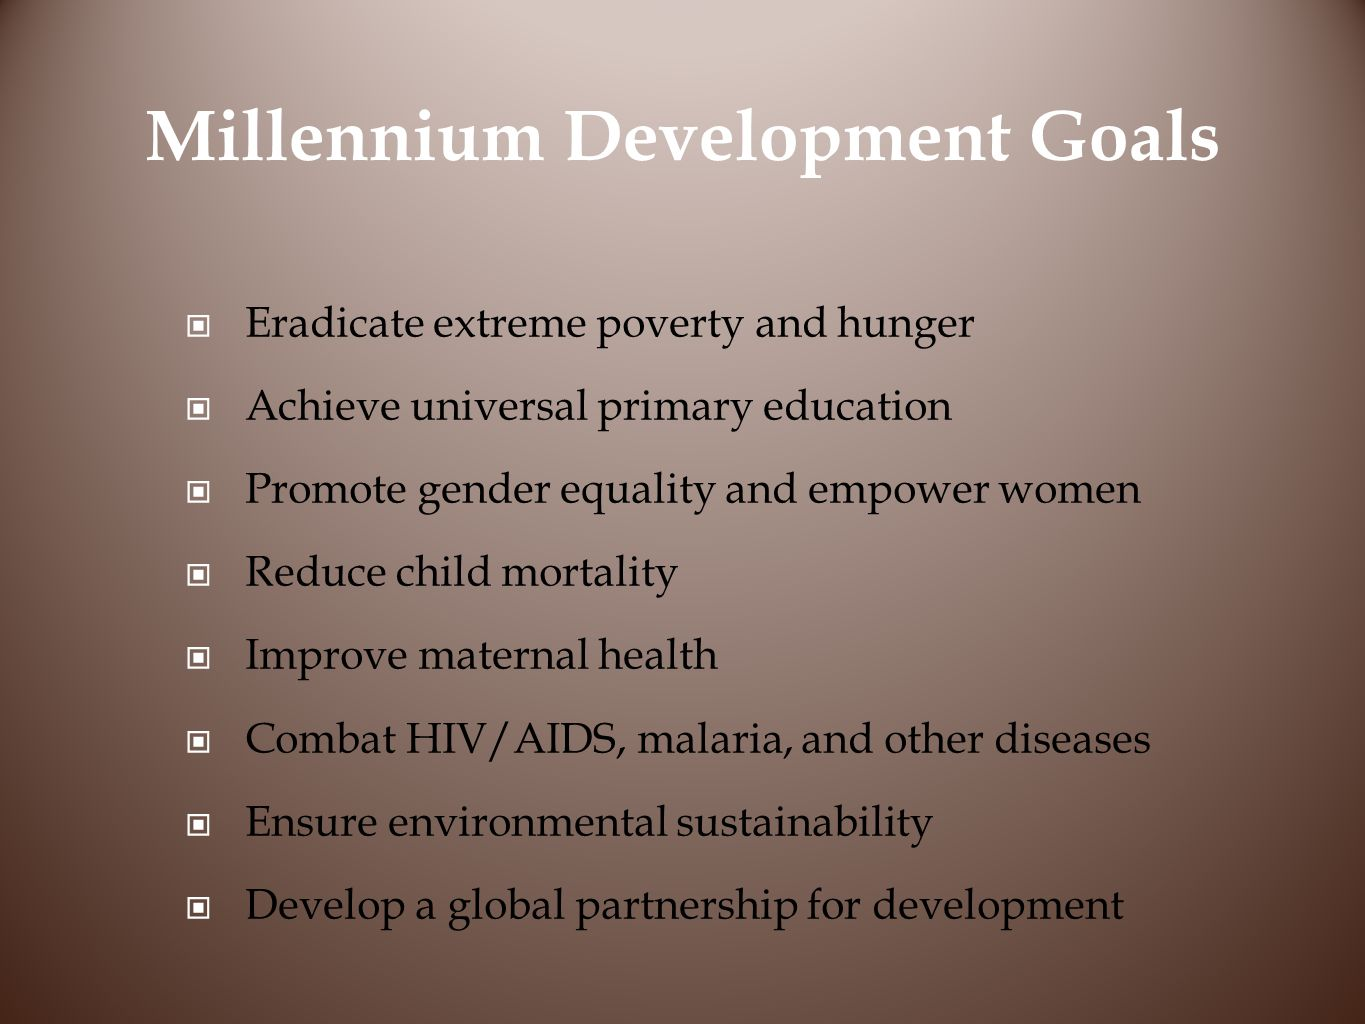 Millennium Development Goals Eradicate extreme poverty and hunger Achieve universal primary education Promote gender equality and empower women Reduce child mortality Improve maternal health Combat HIV/AIDS, malaria, and other diseases Ensure environmental sustainability Develop a global partnership for development